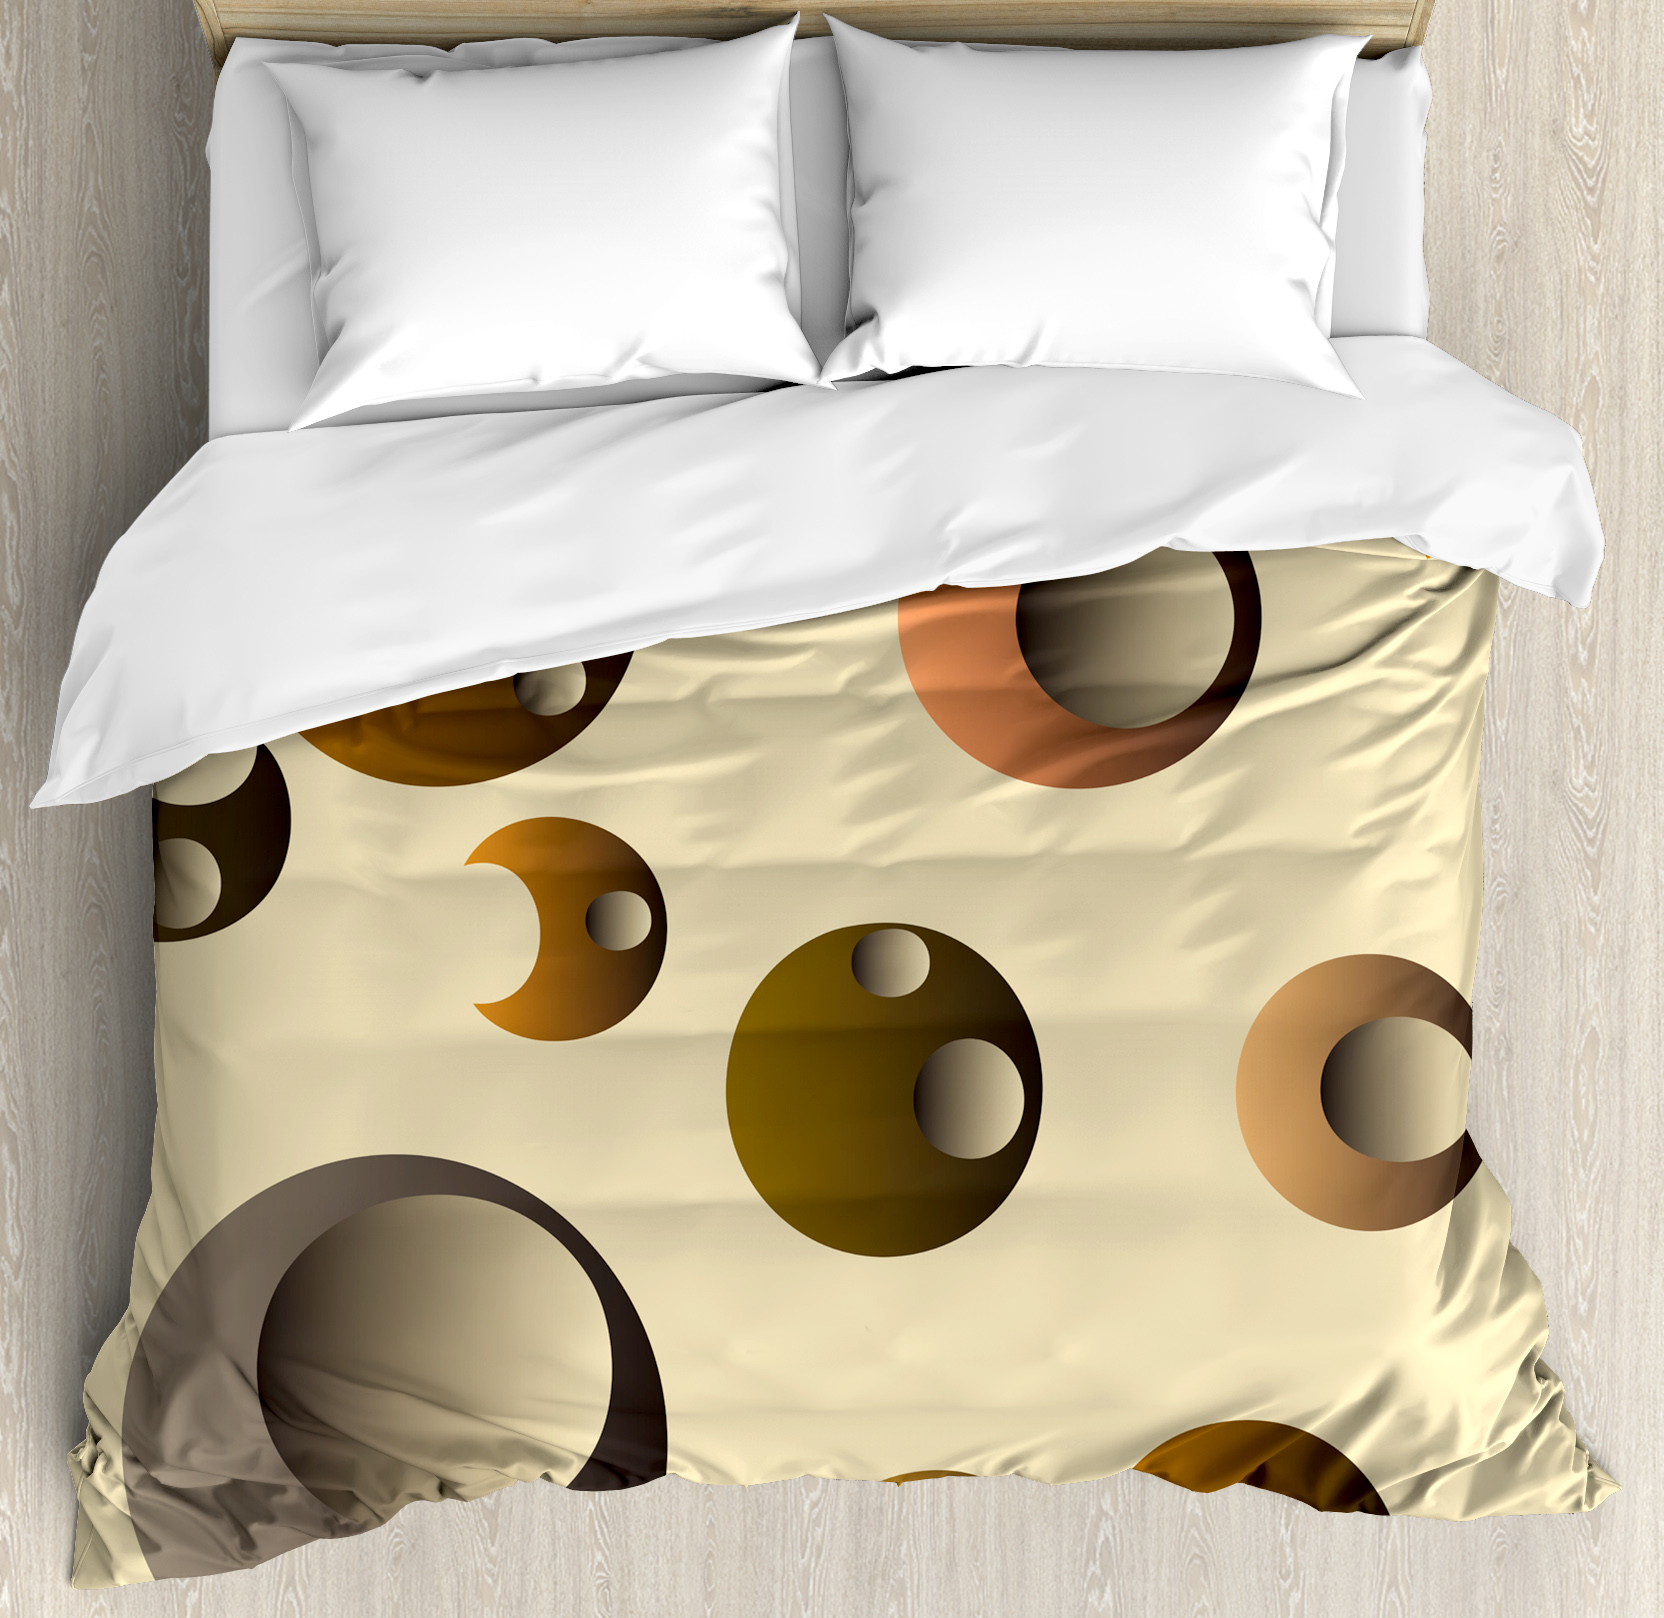 Retro King Size Duvet Cover Set, Funky Bubbles in Round D...